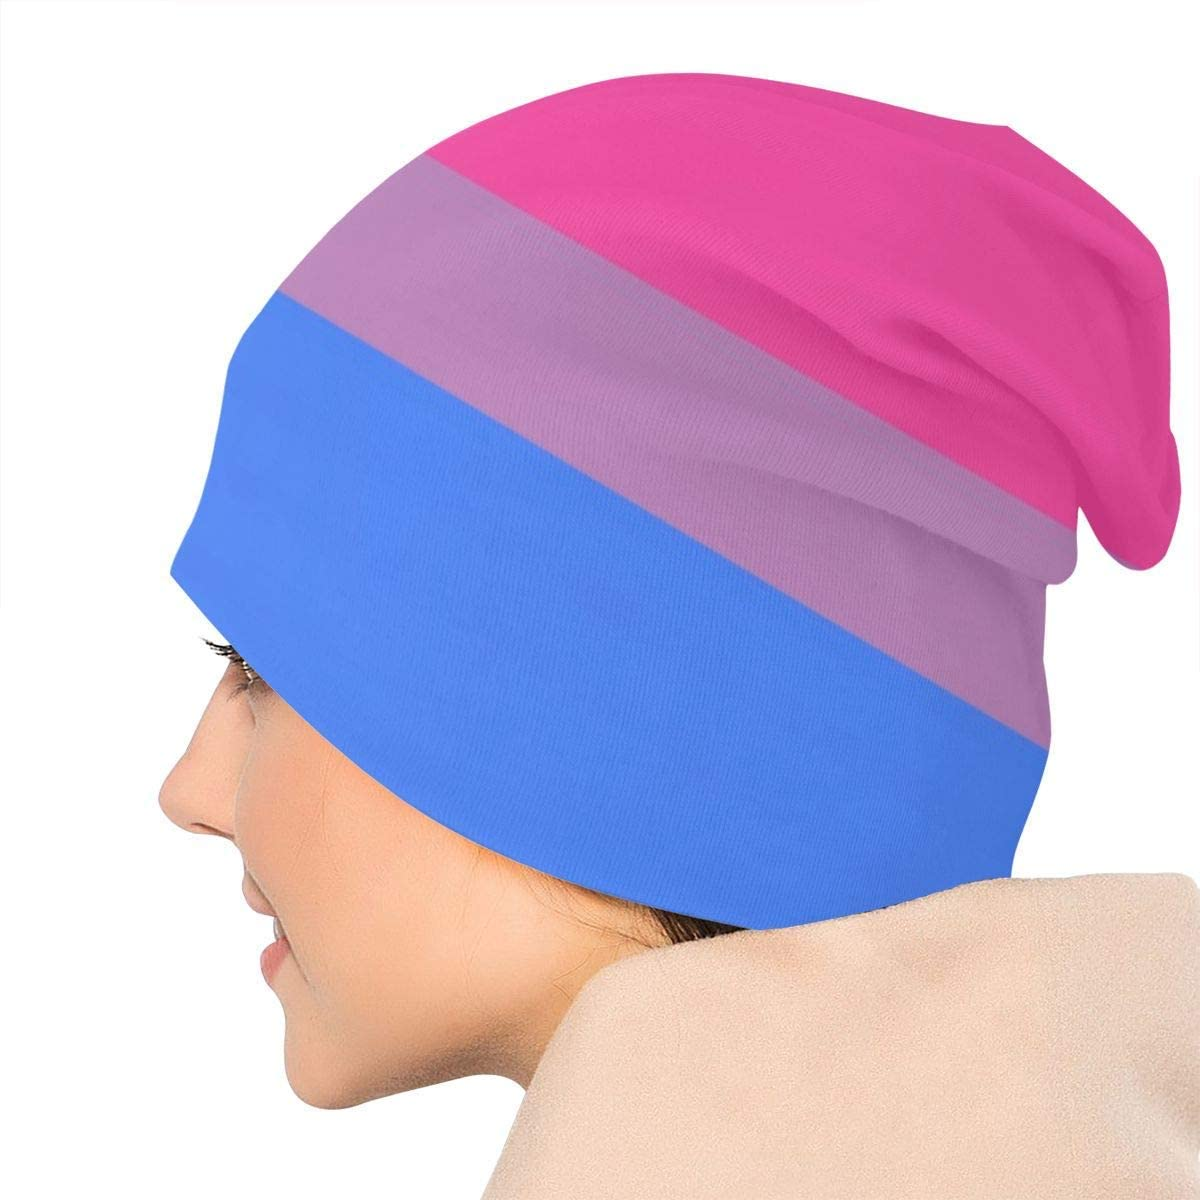 lmf379581 Bisexual Pride Color Unisex Adult Head Beanie Hat Lightweight Baggy Slouchy Elastic Turban Confinement Cap Headwraps White